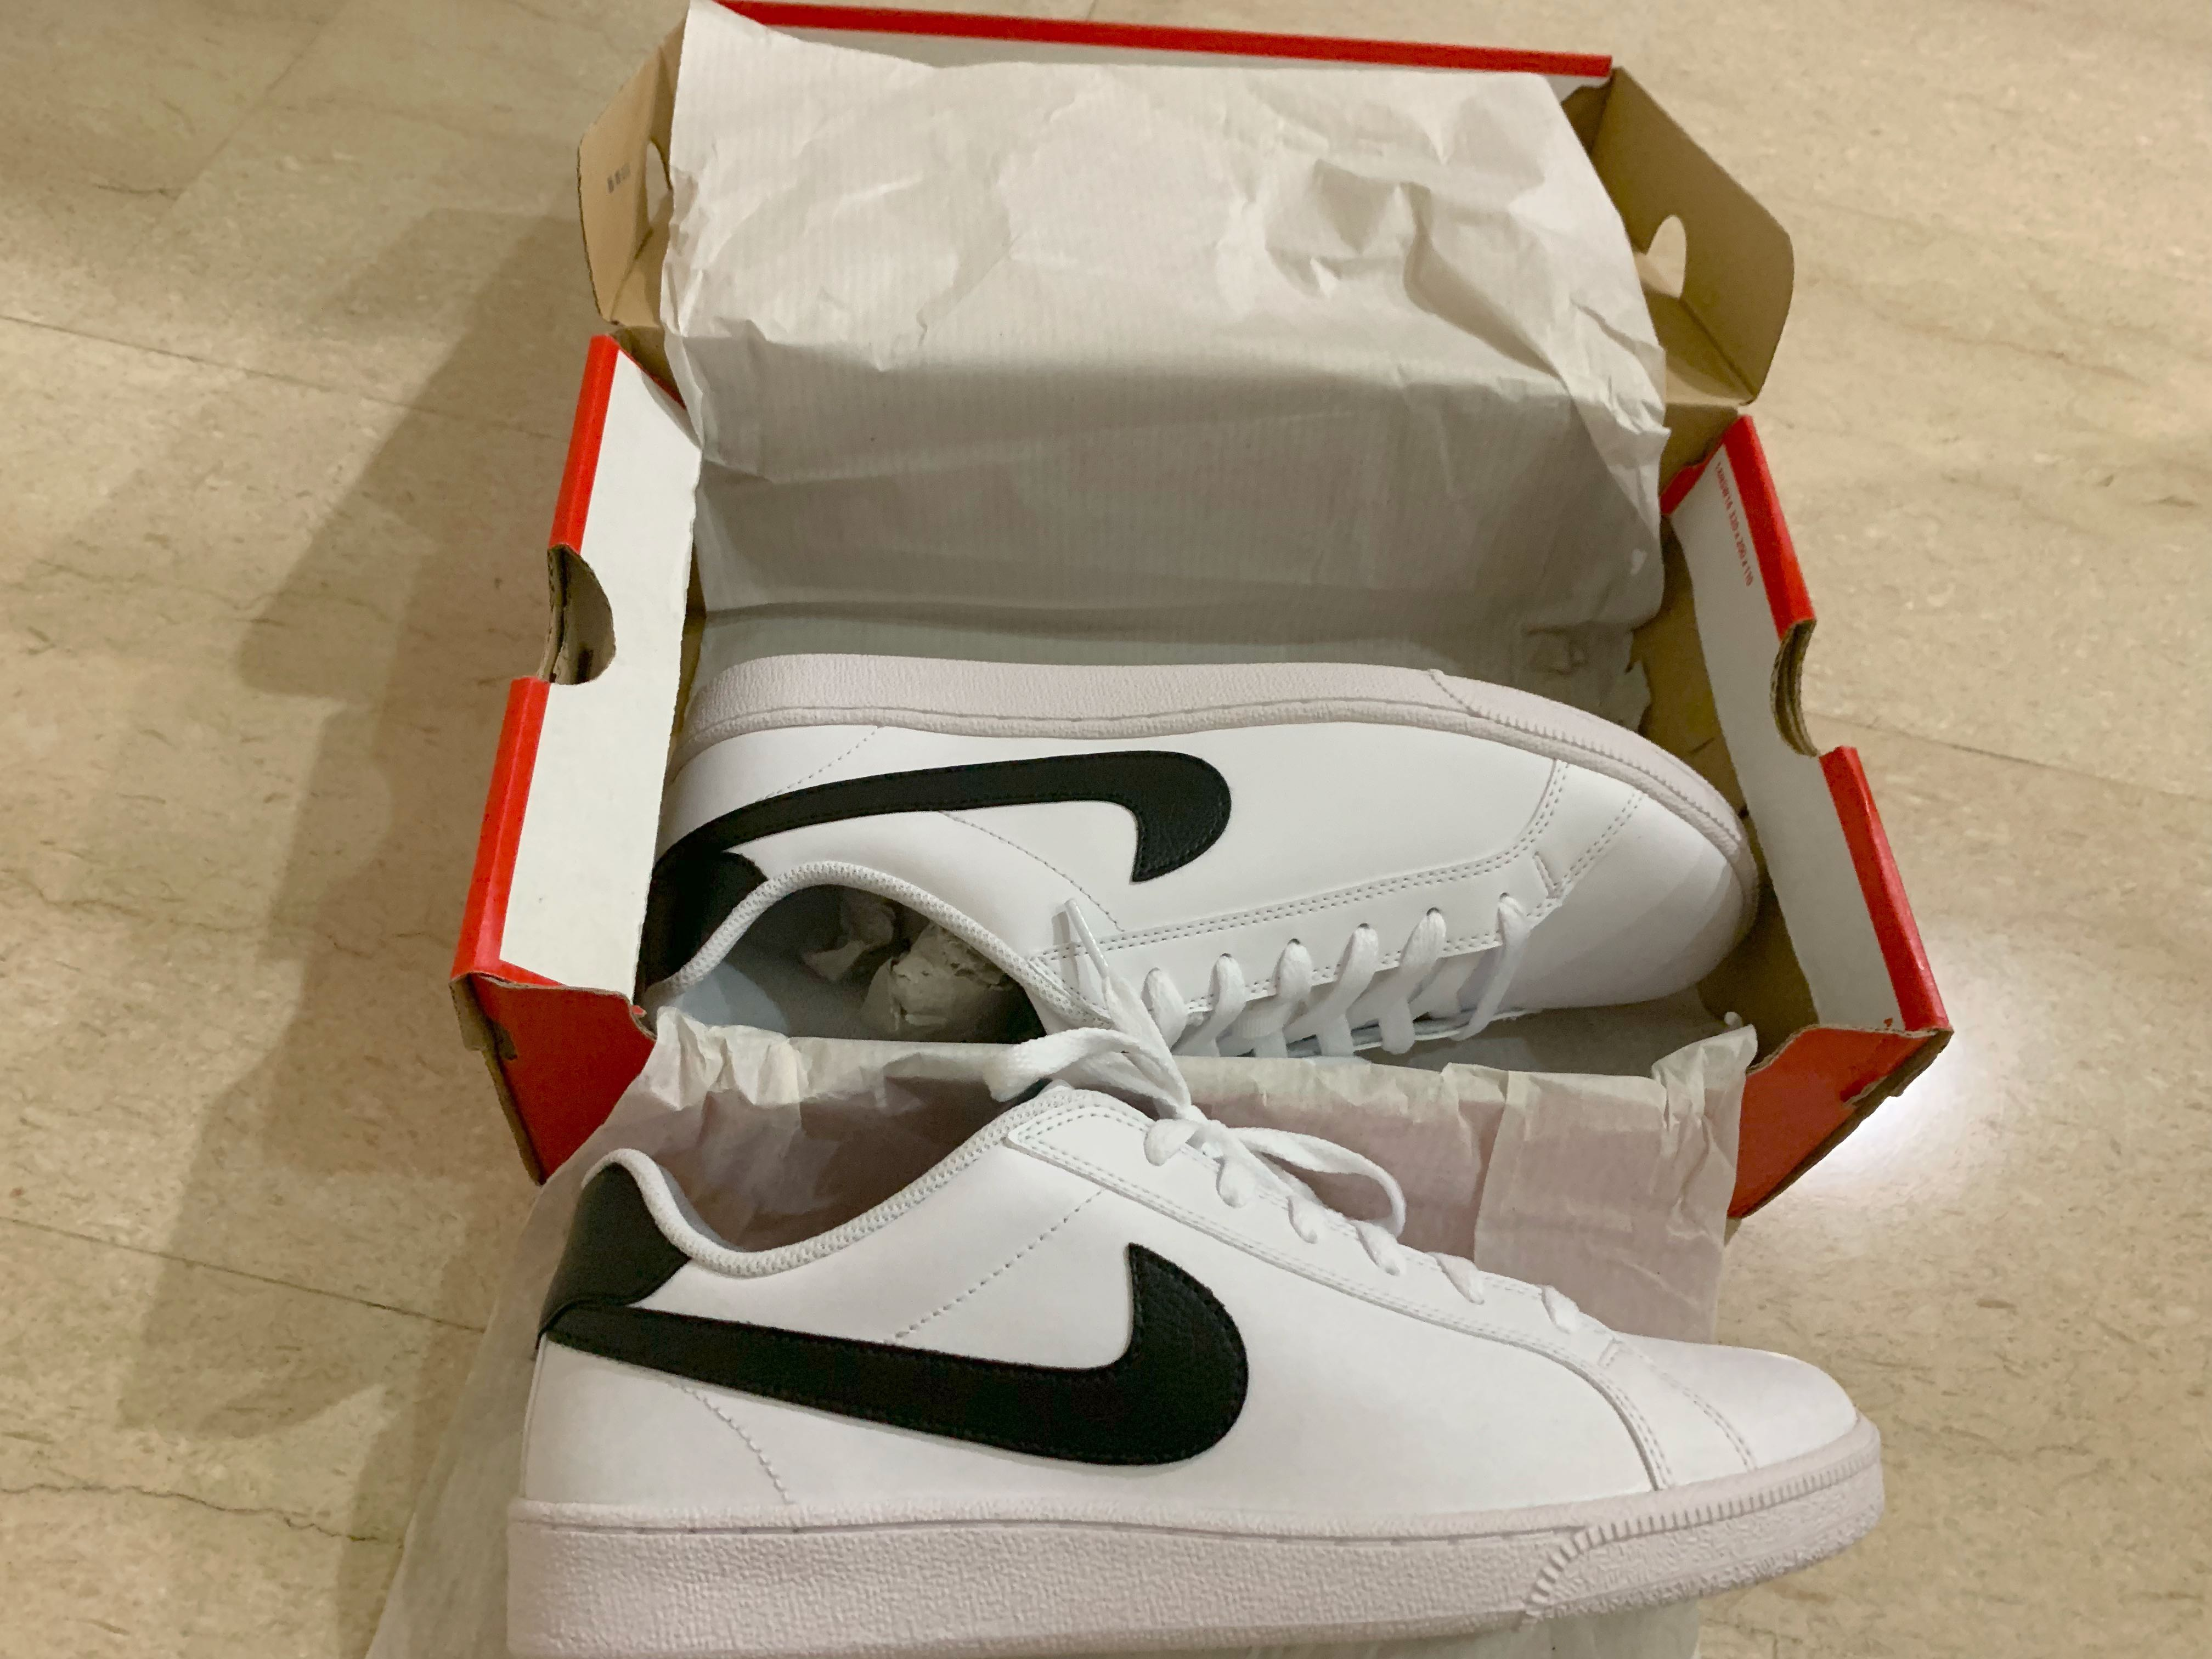 new style 6529c 87fa1 Nike Court Majestic leather, Men s Fashion, Footwear, Sneakers on Carousell